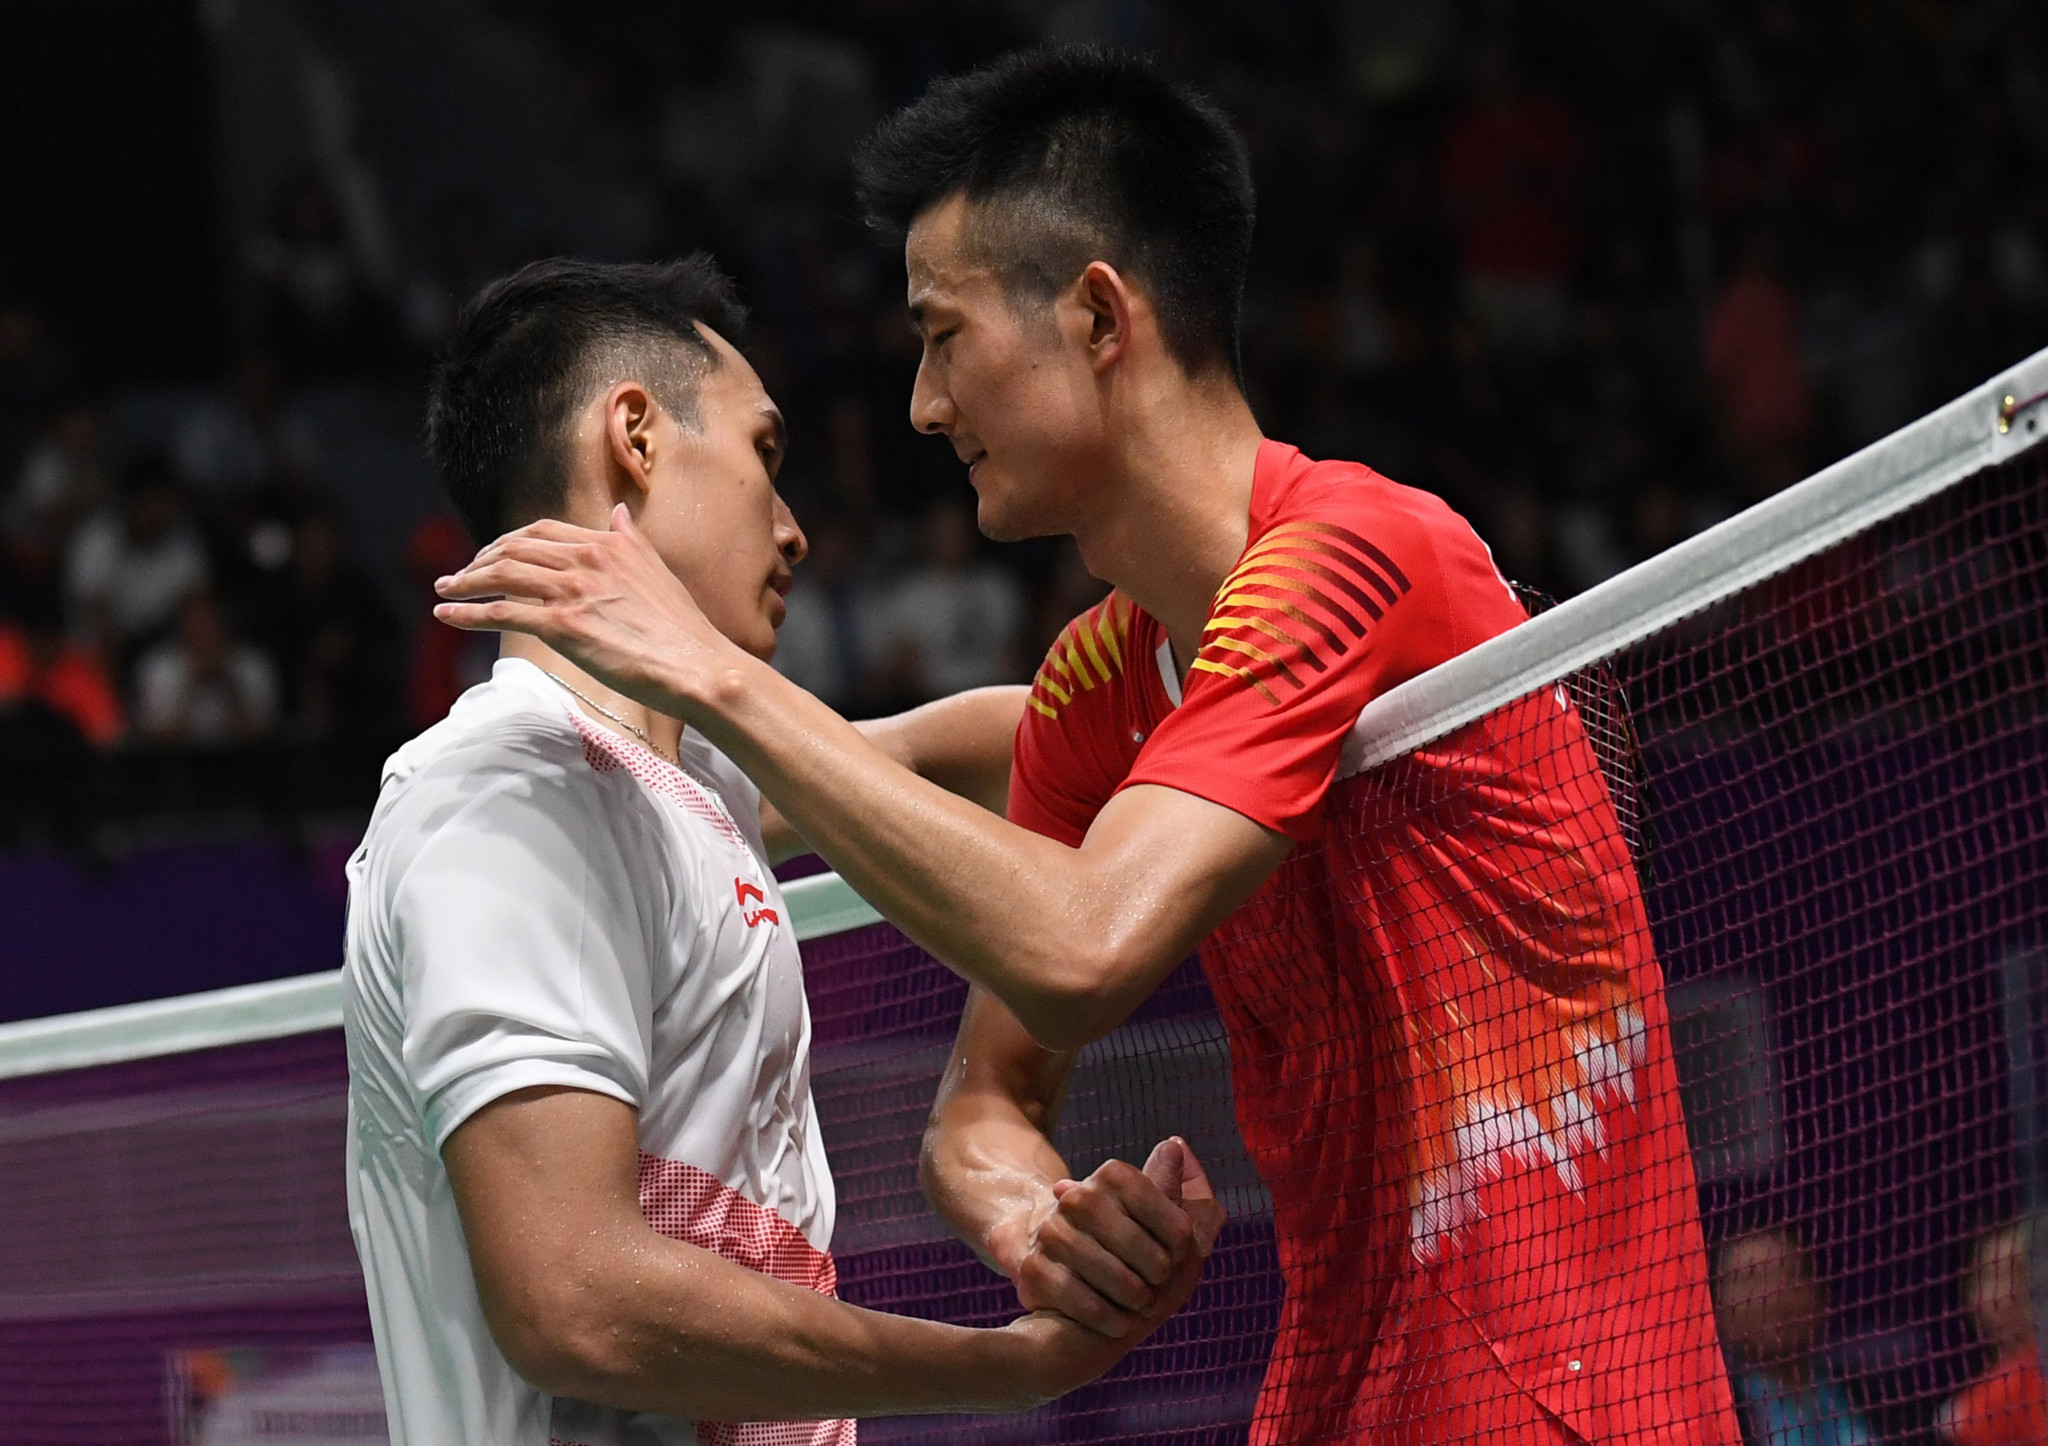 Epic men's team badminton final caps off action-packed fourth day at 2018 Asian Games